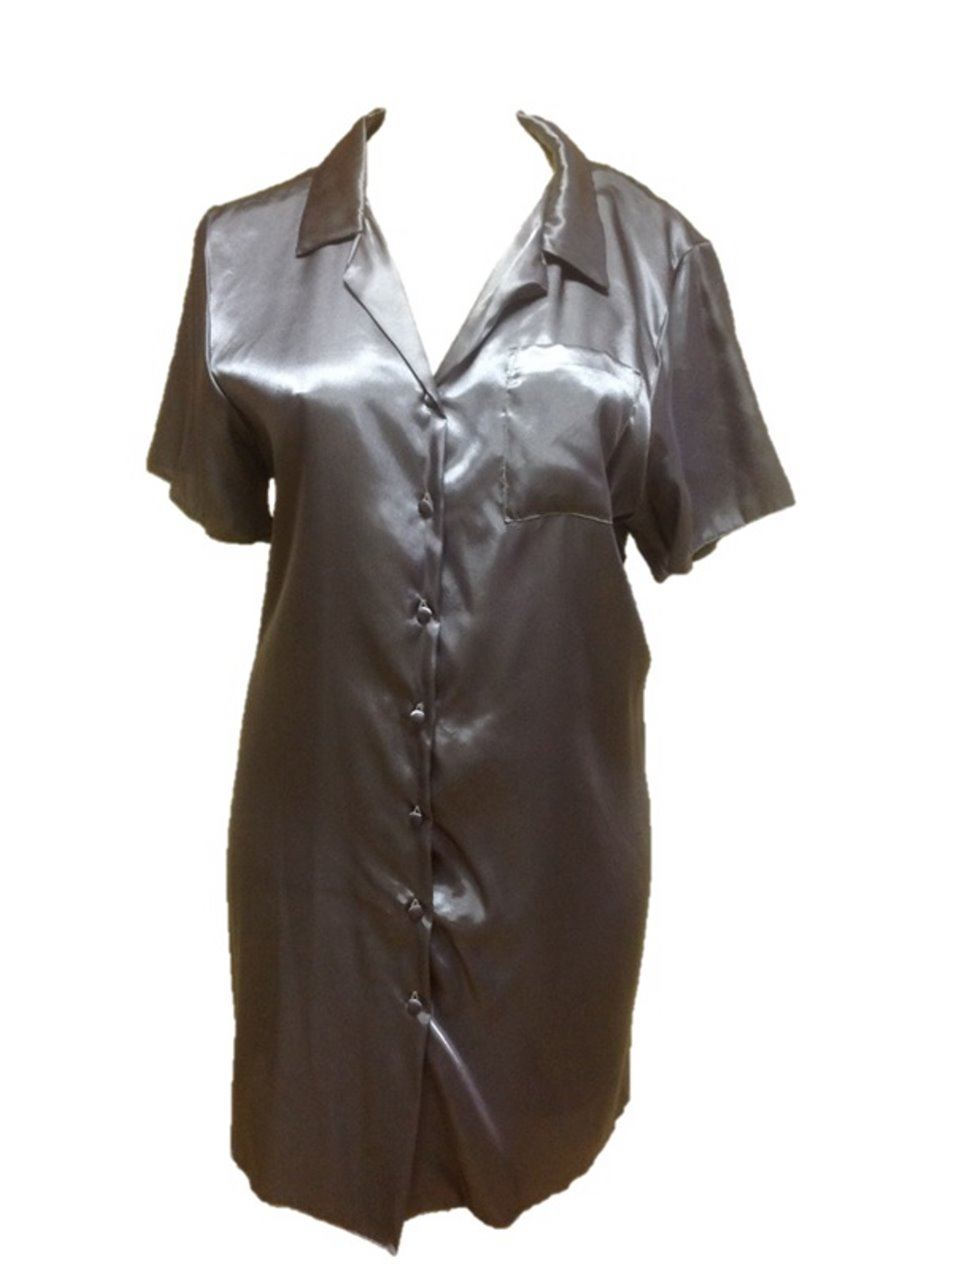 Find great deals on eBay for satin sleep shirts for women. Shop with confidence.